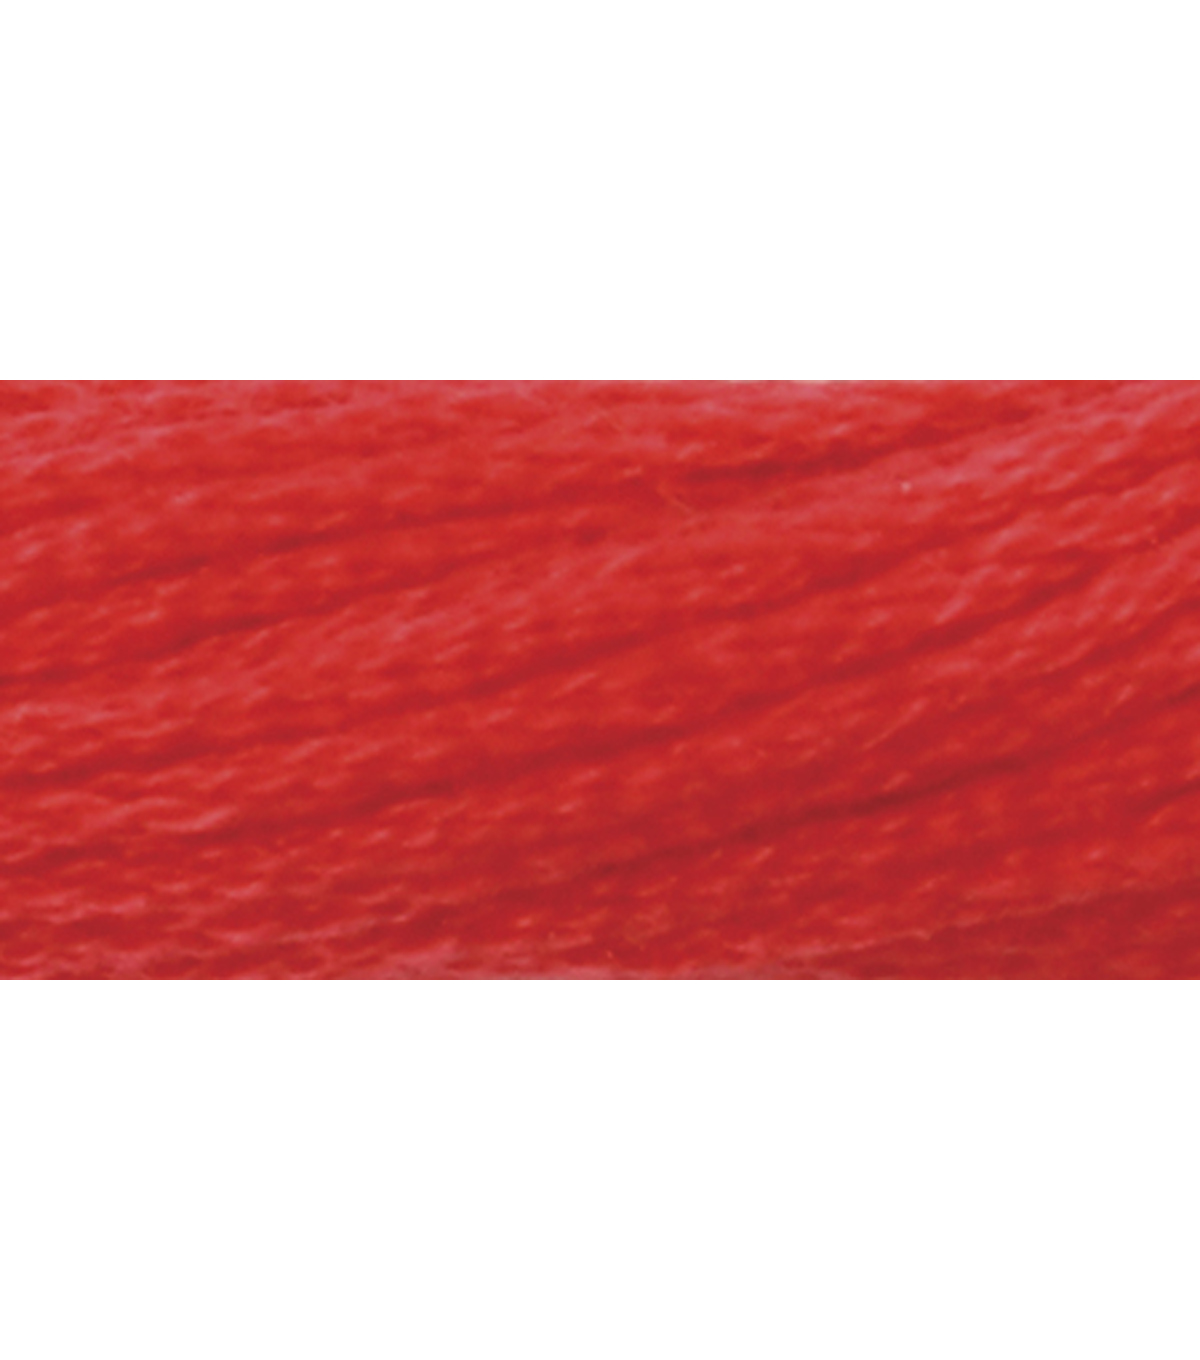 C&C 6-Strand Embroidery Floss 8.75yd-Christmas Red